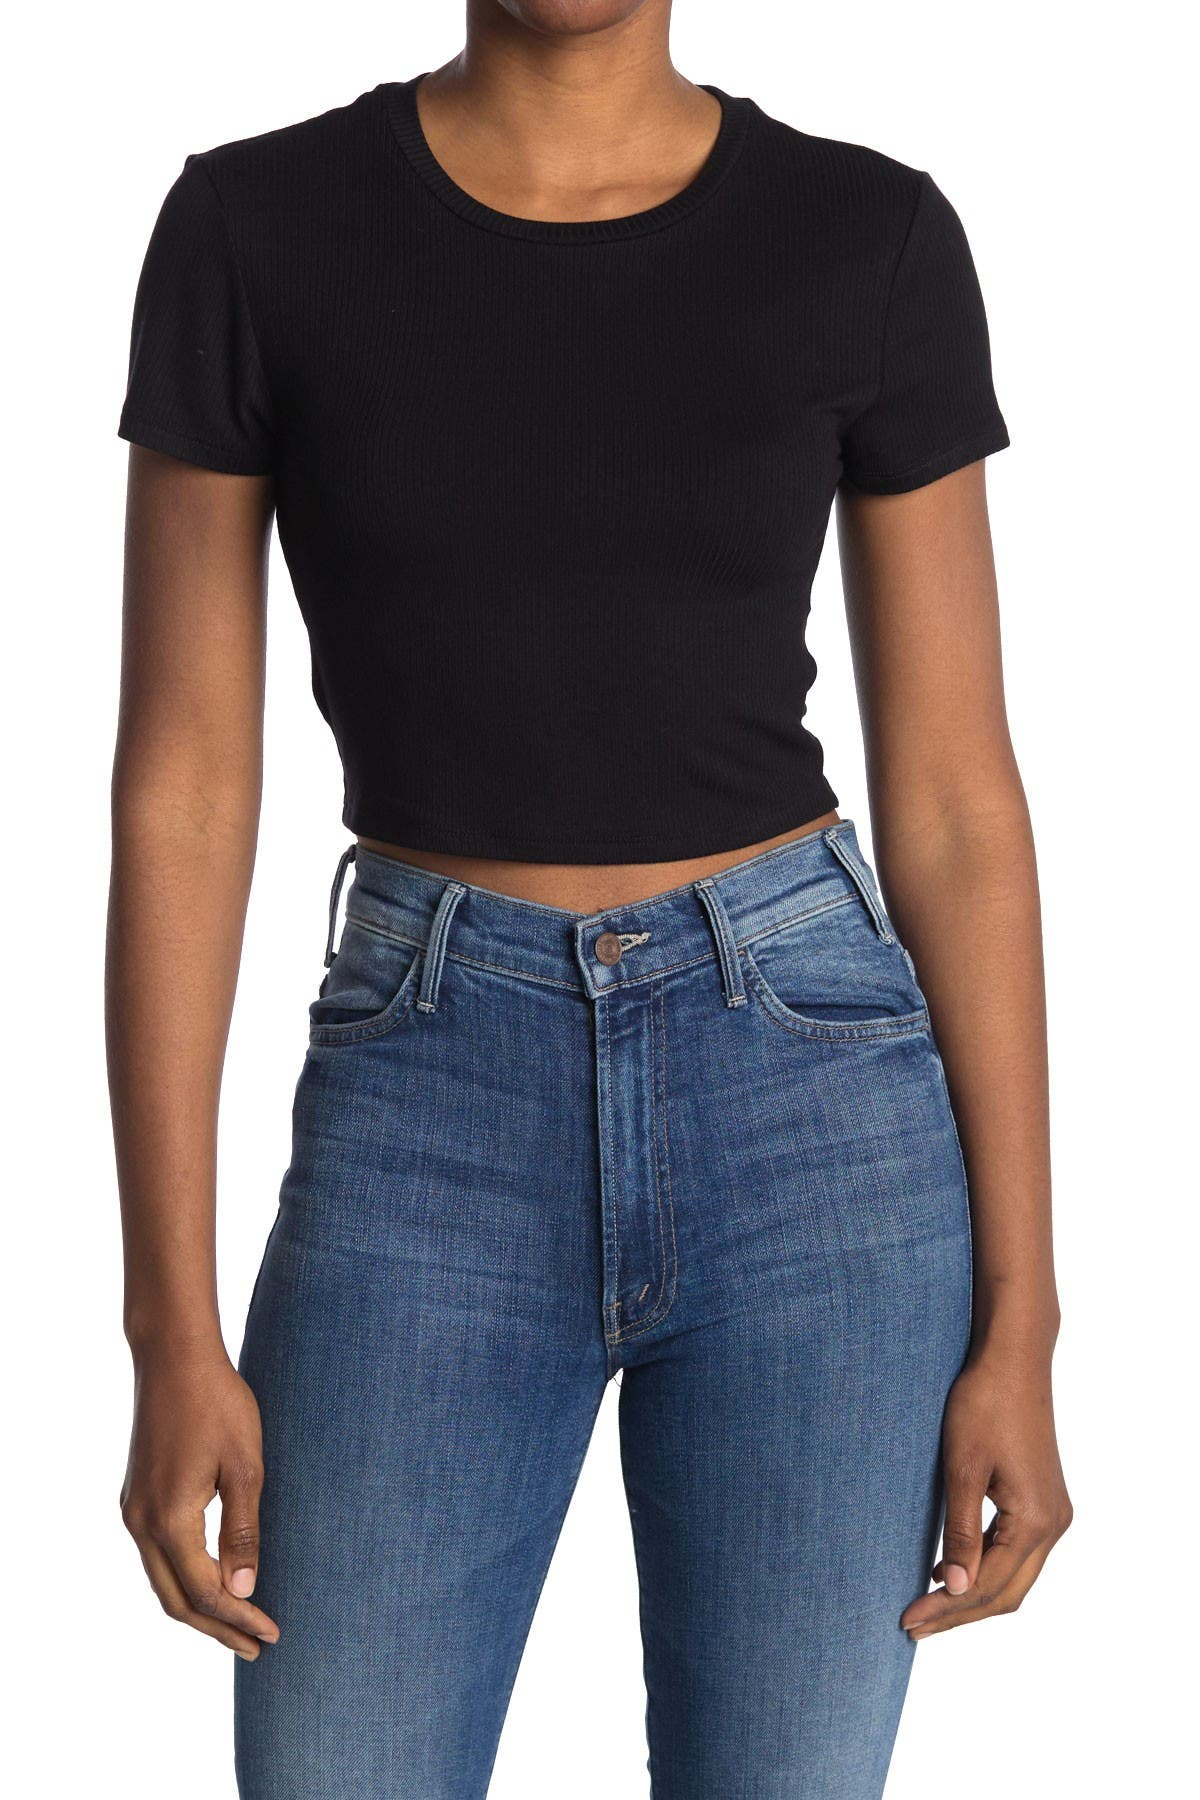 Image of BCBGeneration Baby Cropped Knit Top